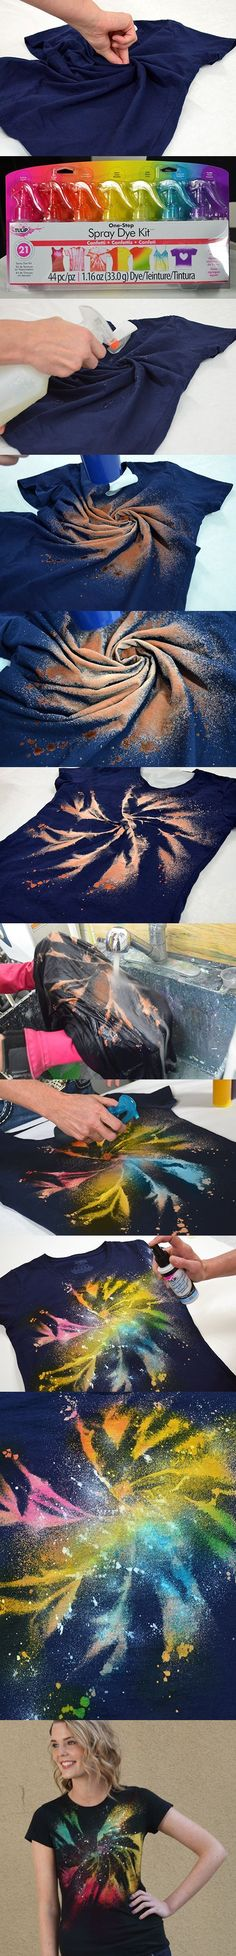 Twist shirt, spray bleach, then add colors...or just leave bleached. Fun activity for the kids while at the cabin!